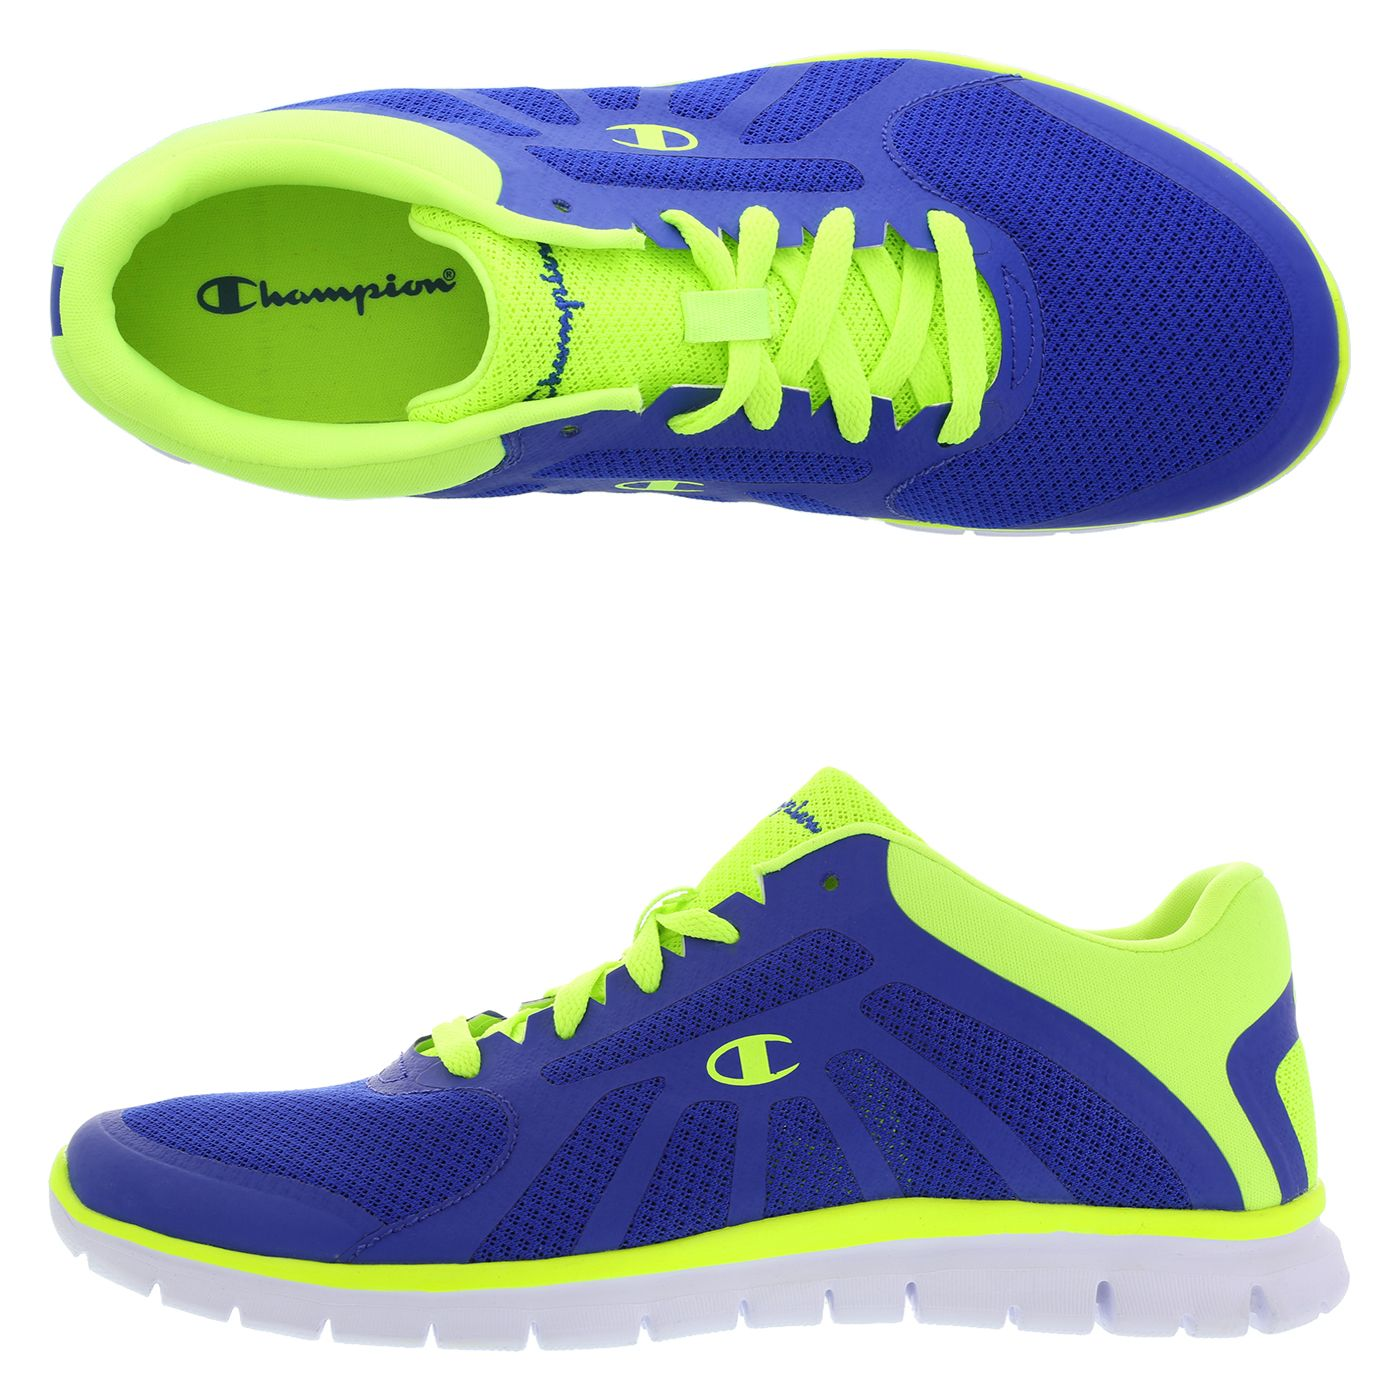 champion fluorescent running shoes - Google Search